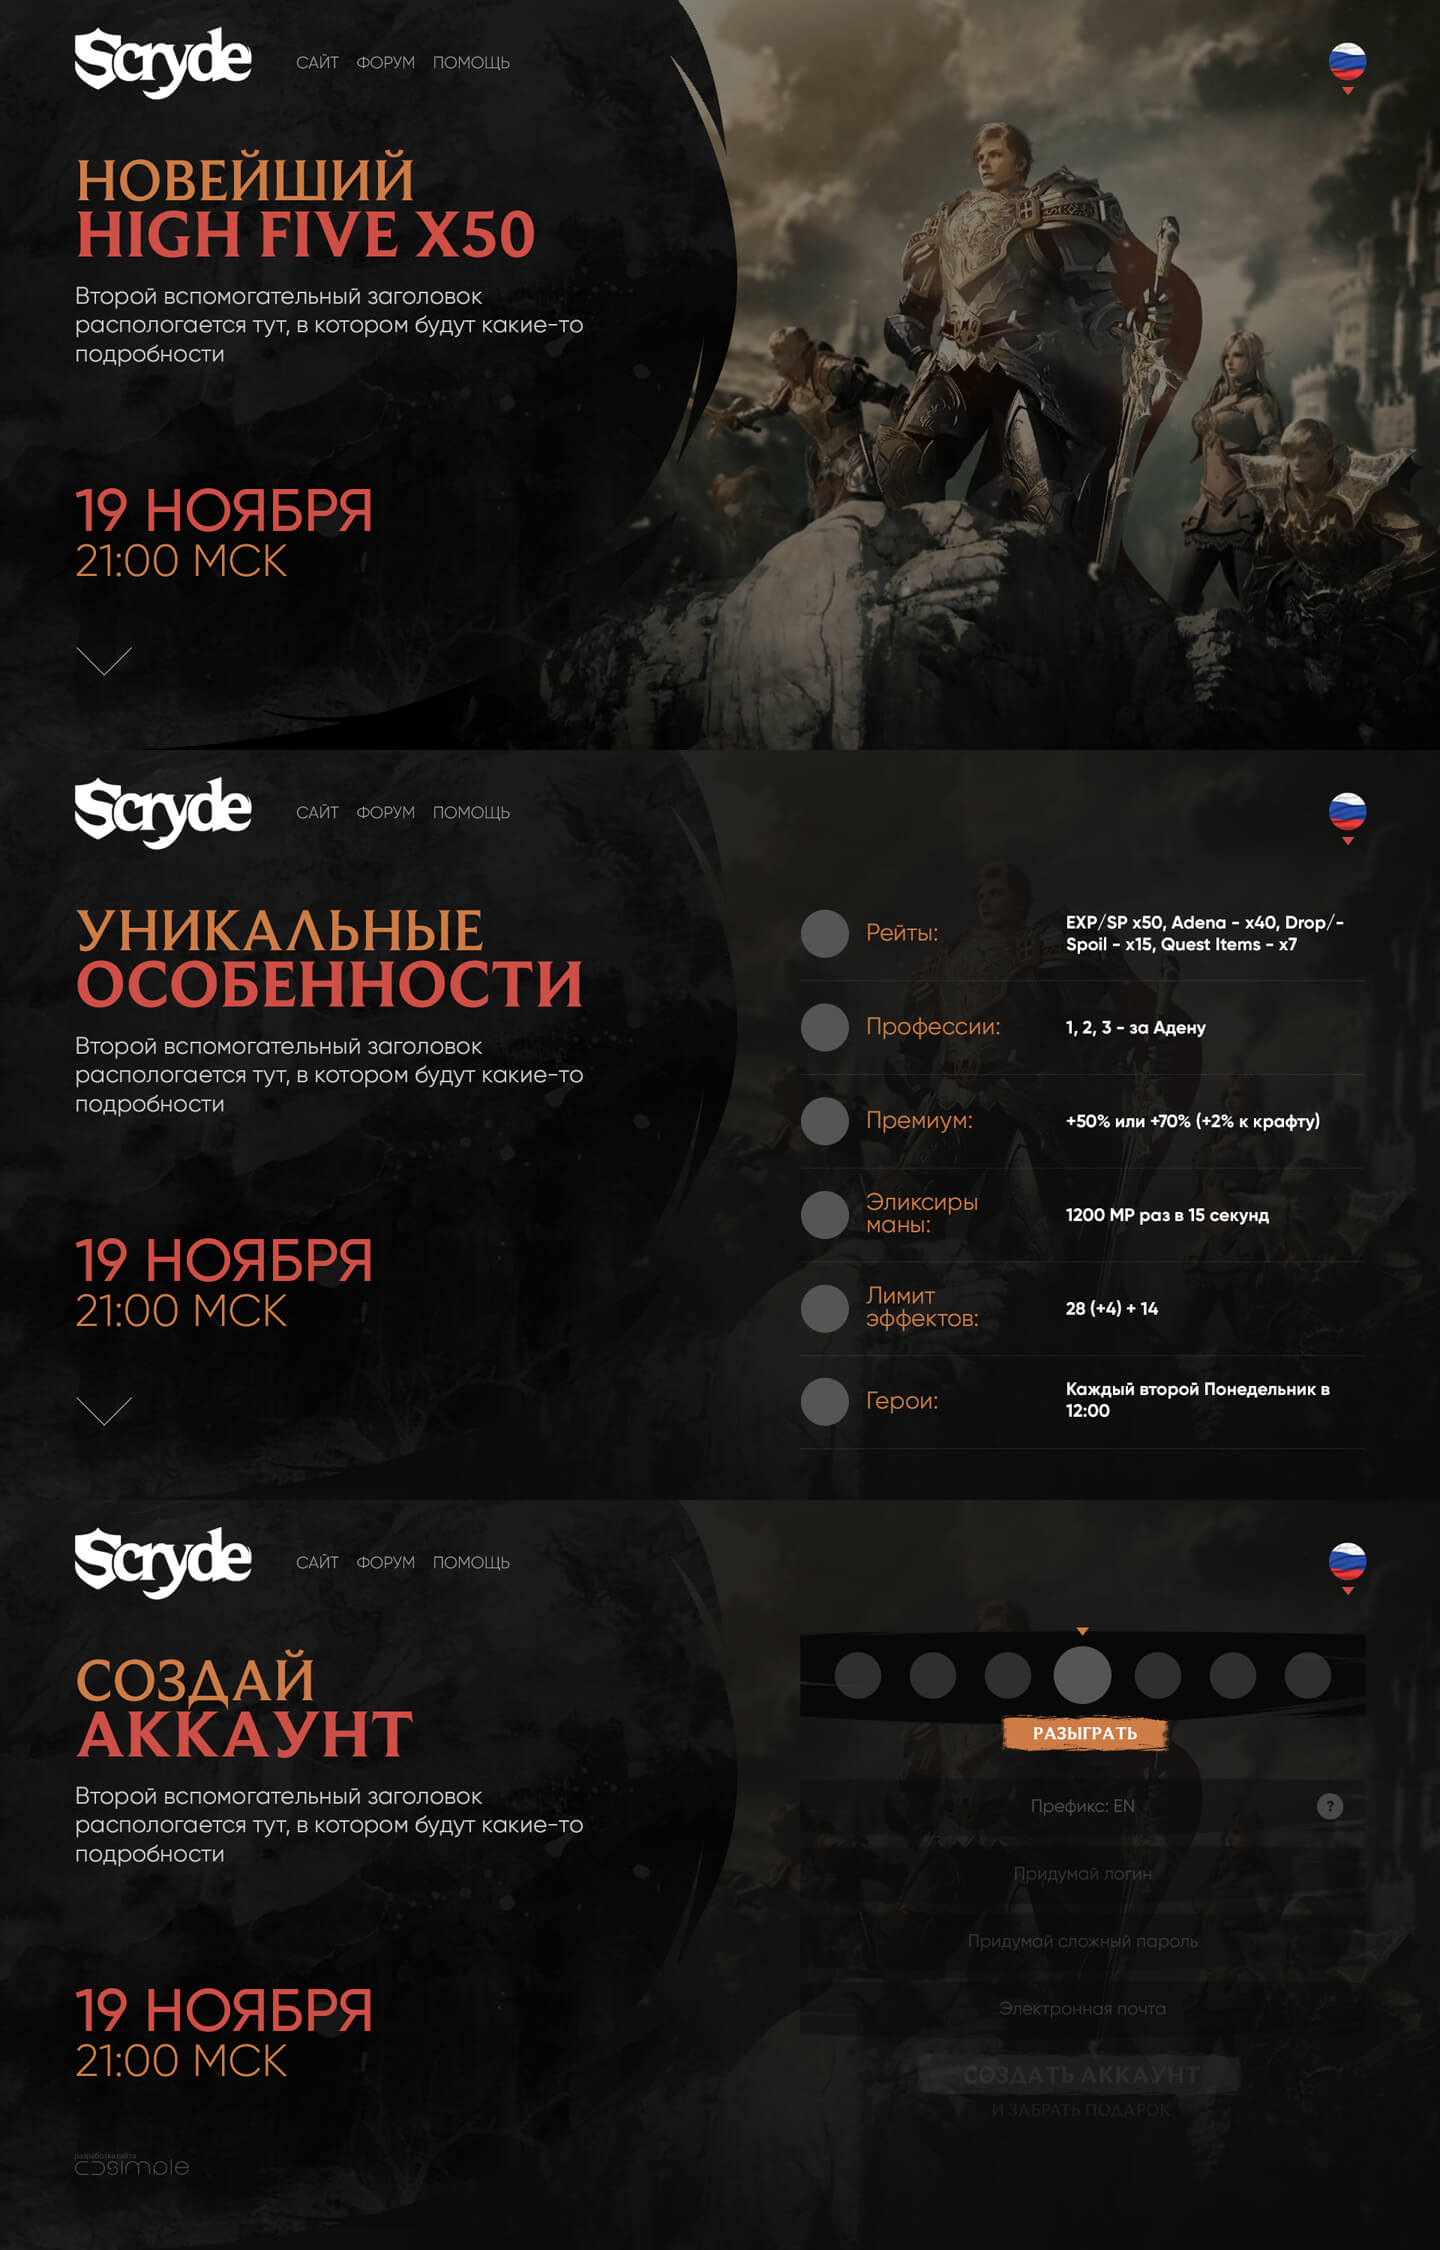 Scryde.X100 > Landing page for Lineage 2 private server. Landing page